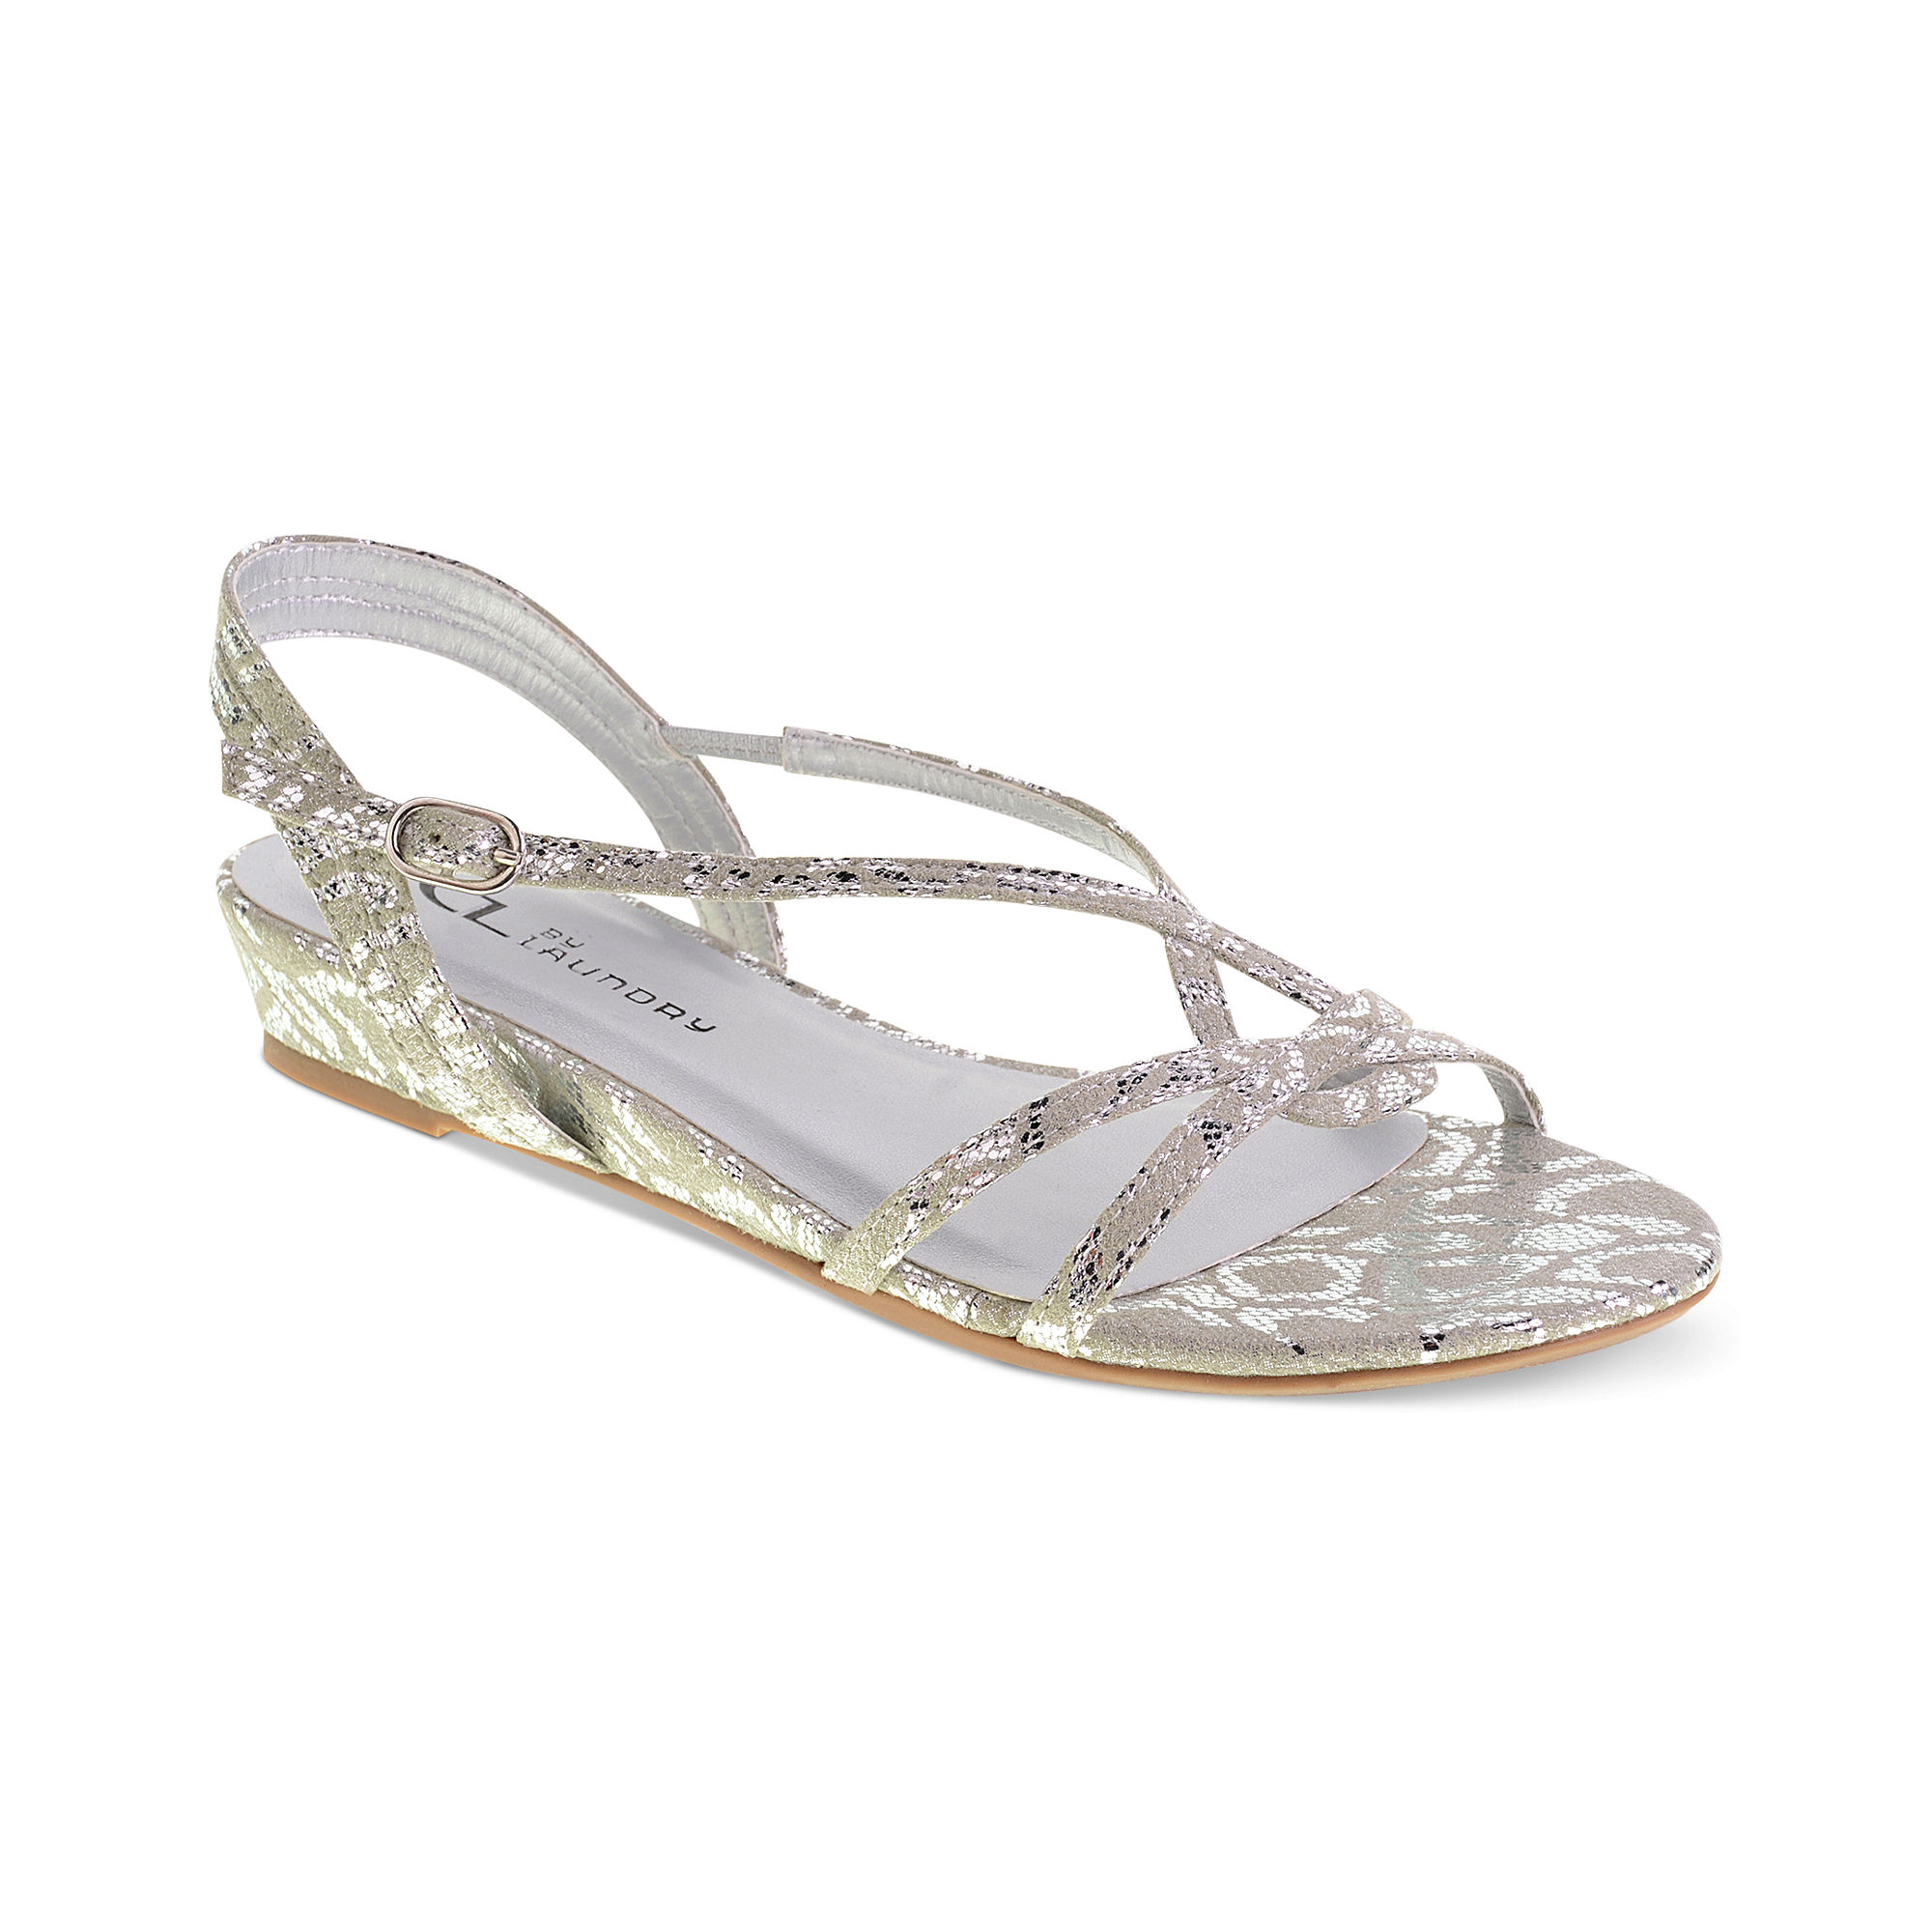 Metallic Leather Flat Shoes